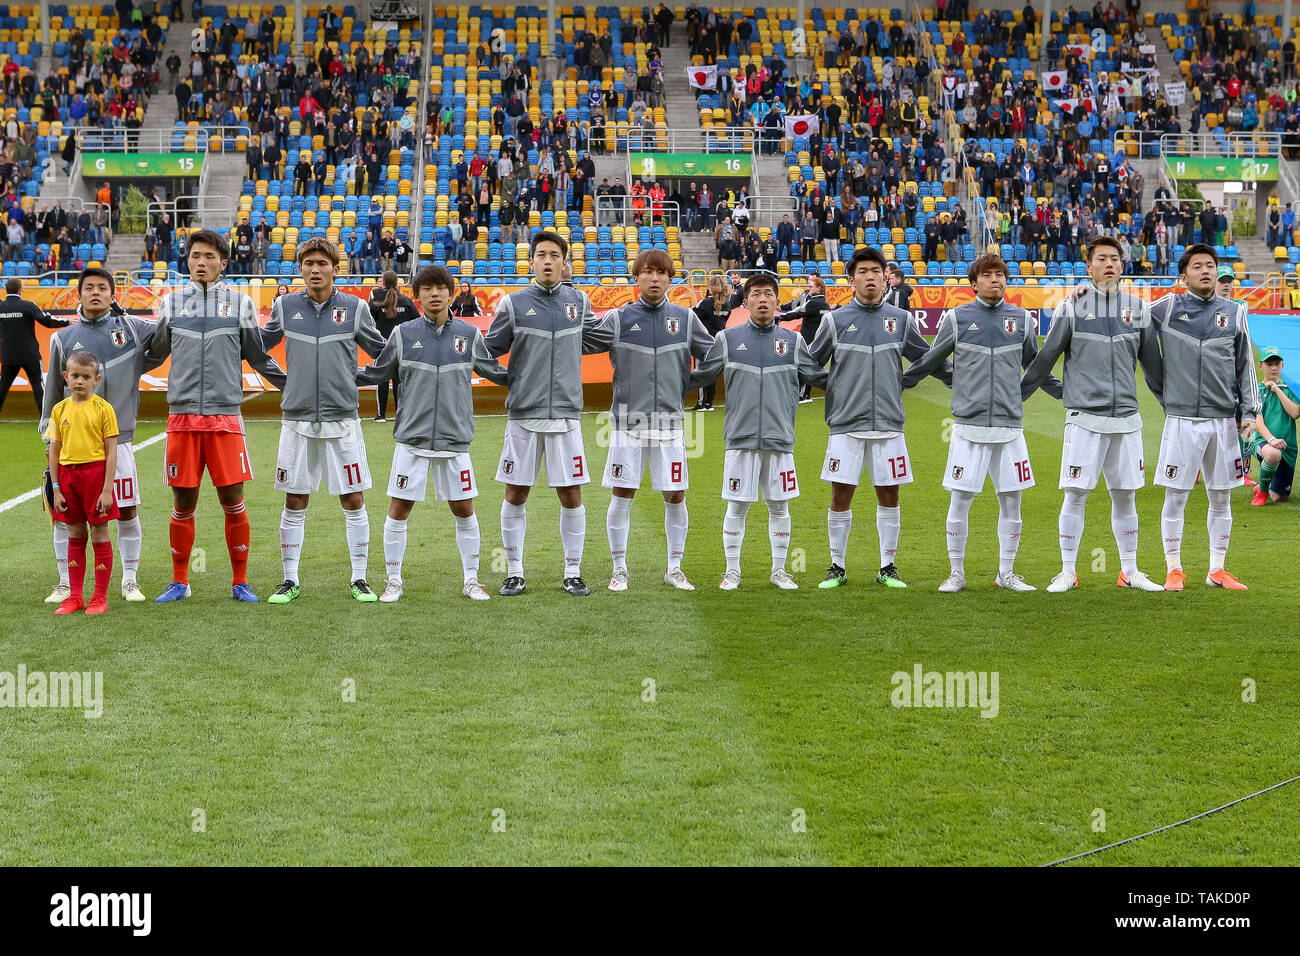 Gdynia Stadium, Gdynia, Poland - 26th May, 2019: National team of Japan seen during teams presentation before FIFA U-20 World Cup match between Mexico and Japan (GROUP B) in Gdynia. (Final score; Mexico 0:3 Japan) - Stock Image